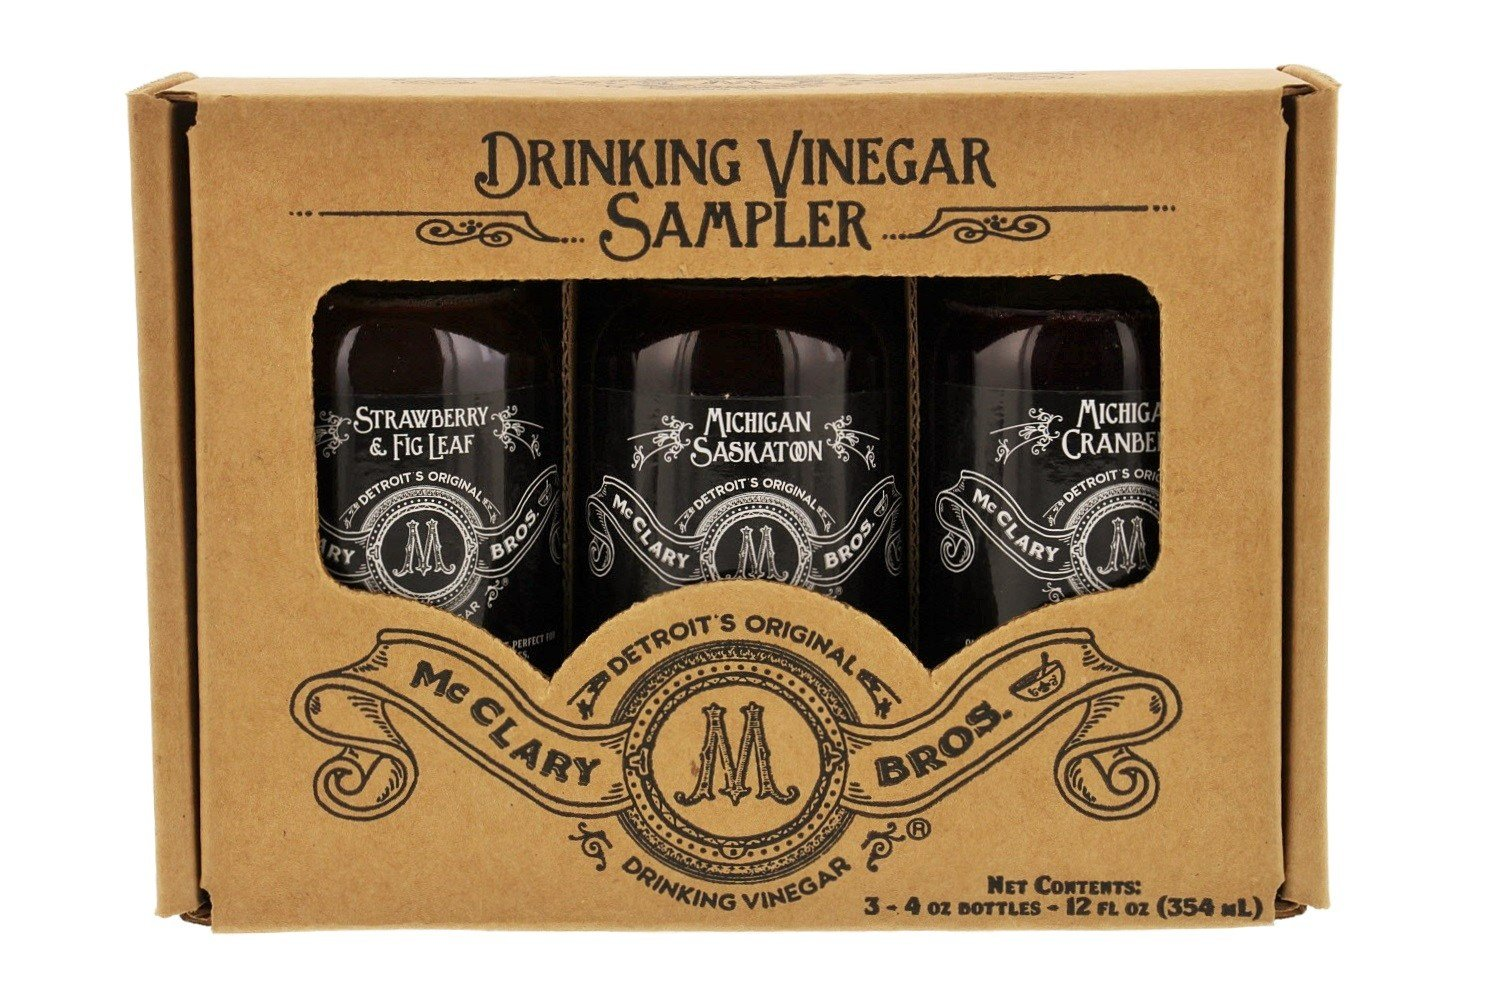 McClary Bros- 3 Bottle Drinking Vinegar Sampler: One 4oz bottle of Strawberry Fig Leaf, One 4oz bottle of Michigan Saskatoon and One 4oz bottle of Michigan Cranberry by McClary Bros. (Image #4)